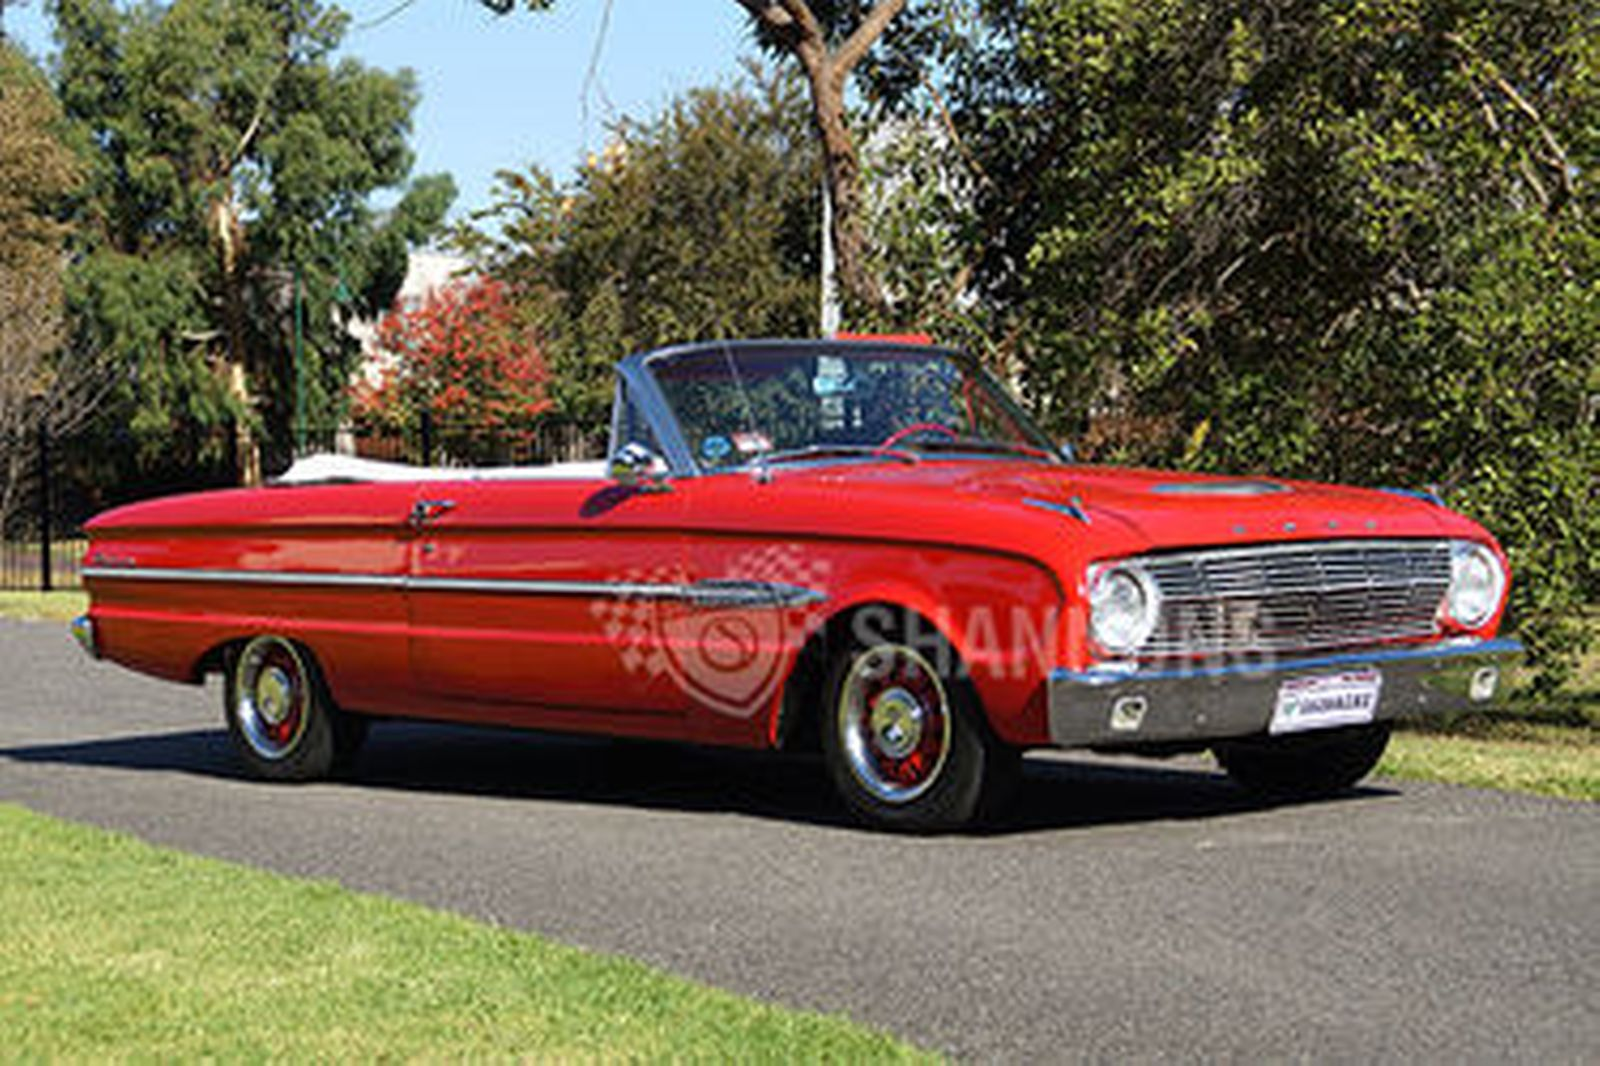 Ford Falcon Convertible Lhd on Ford 170 6 Cylinder Engine